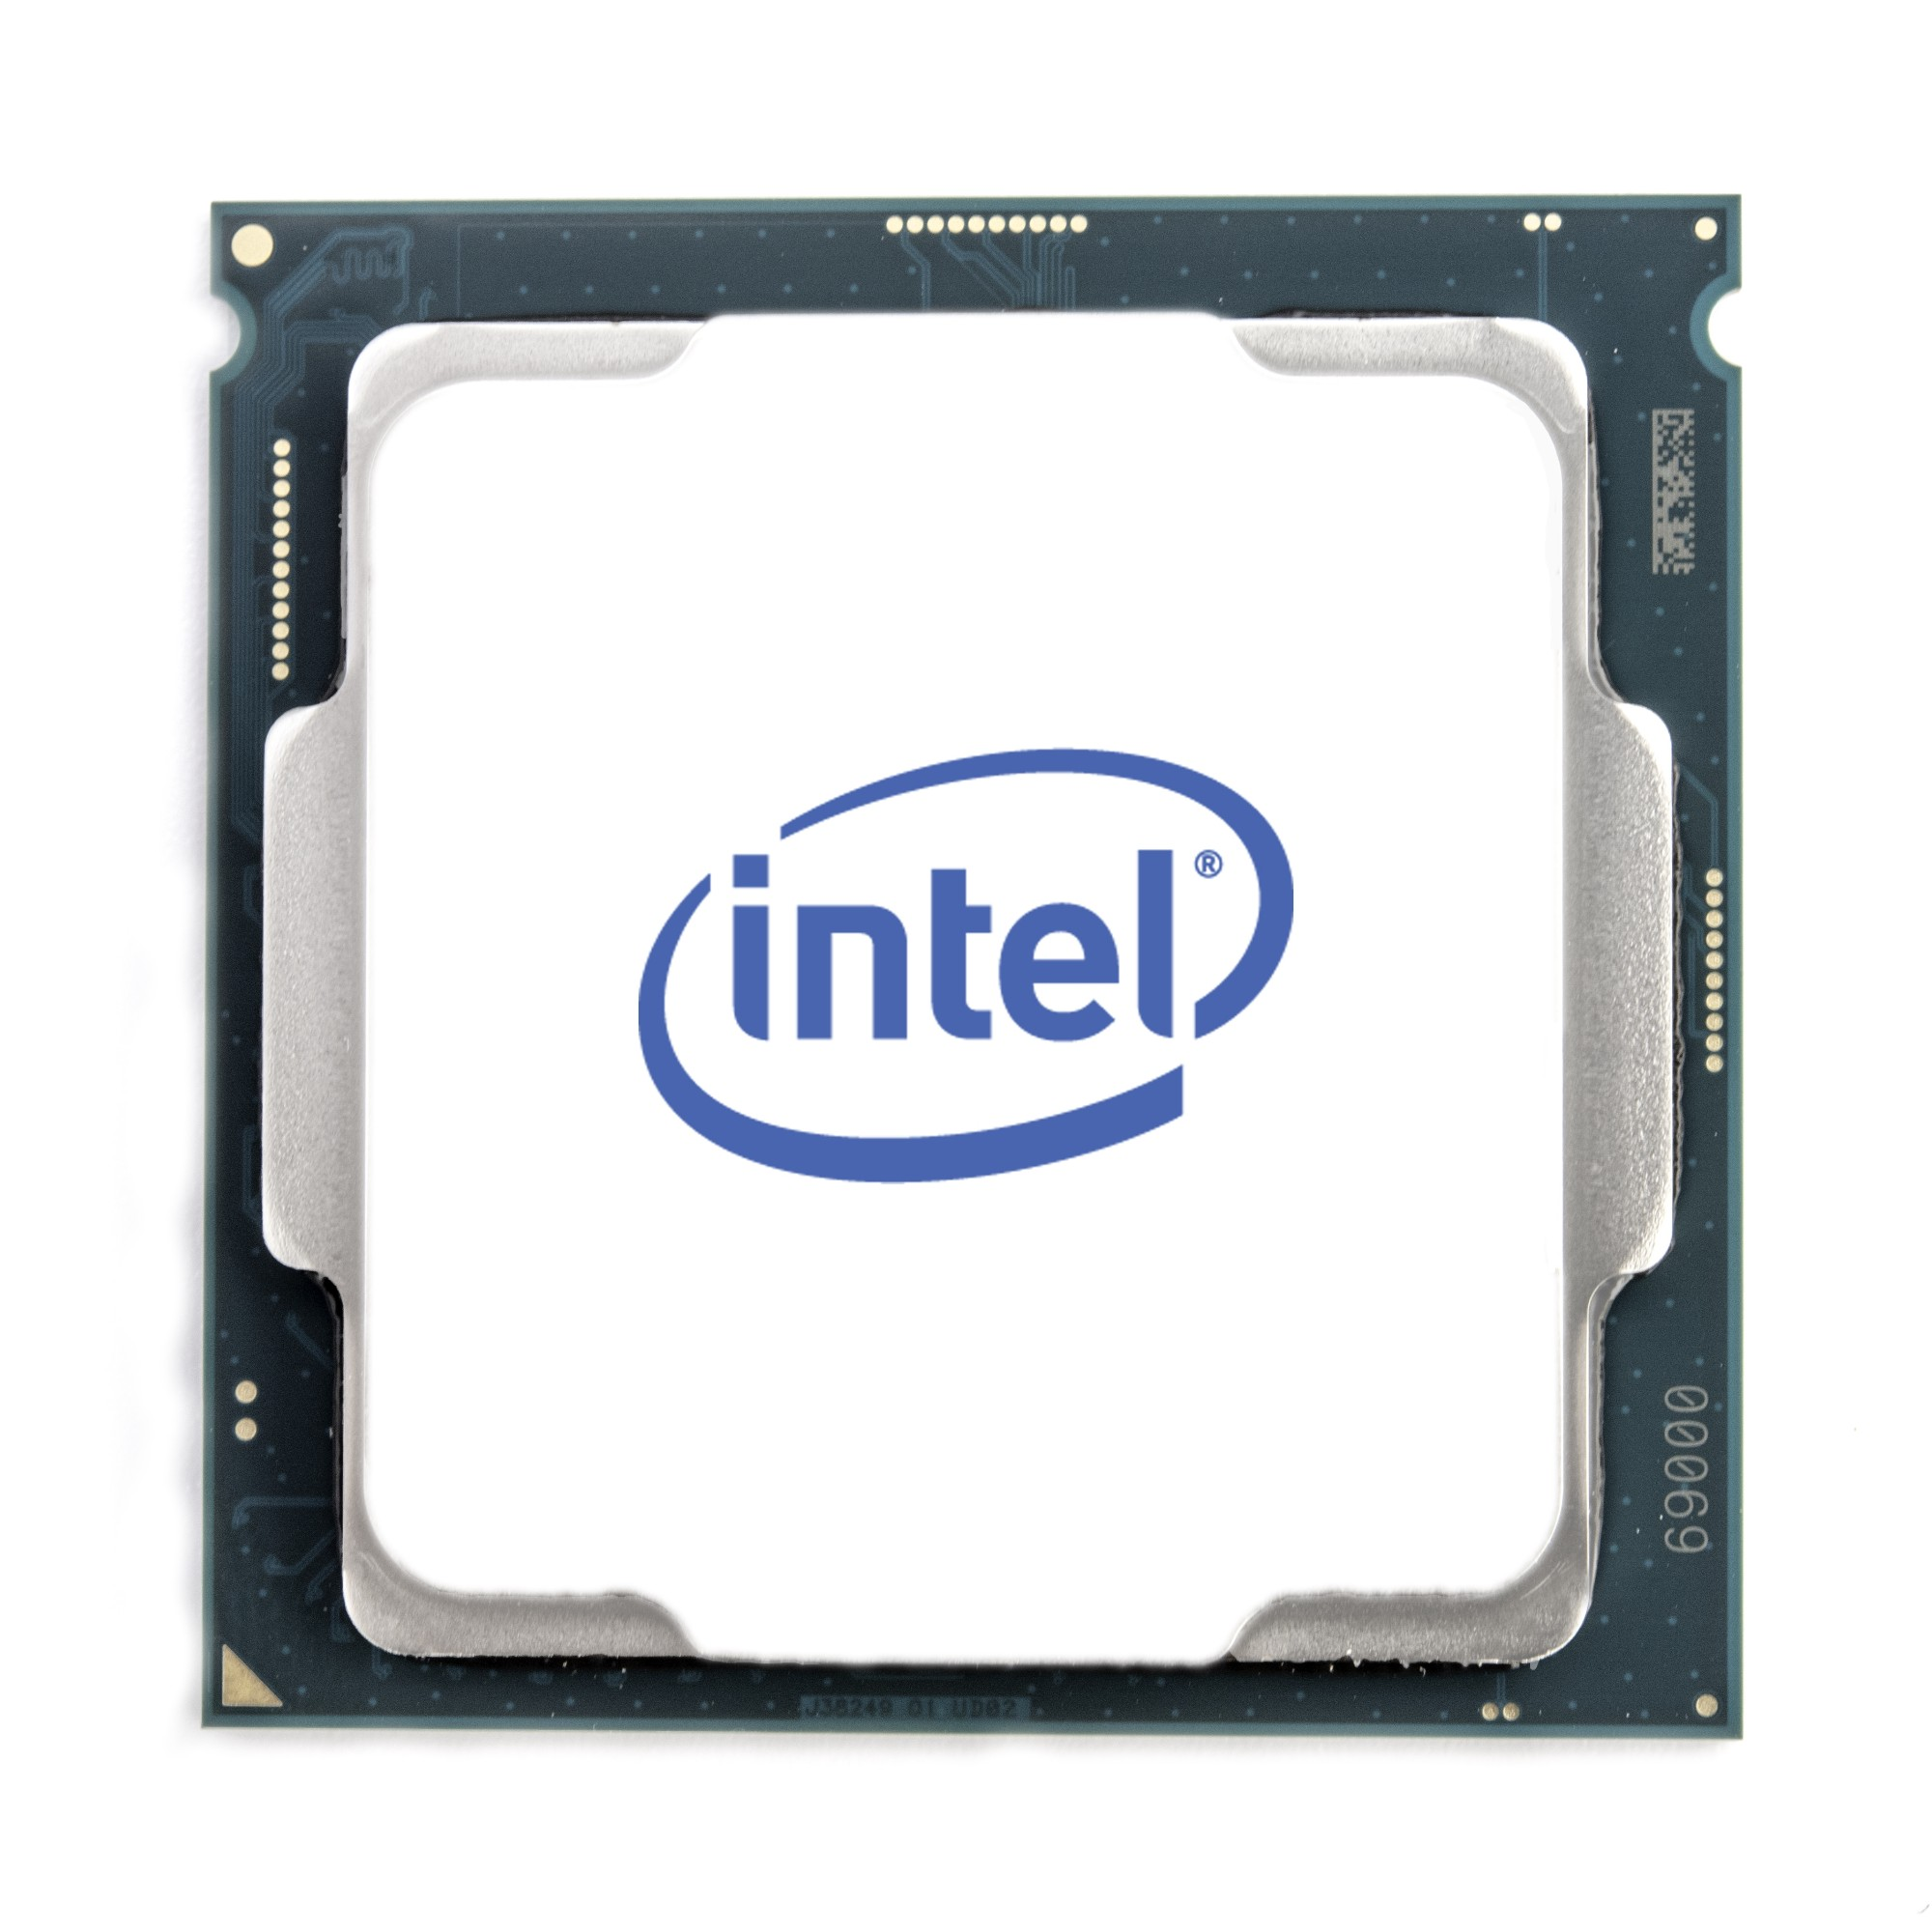 CPU Intel Core i5-9600T / LGA1151v2 / Tray ### 6 Cores / 6 Threads / 9M Cache